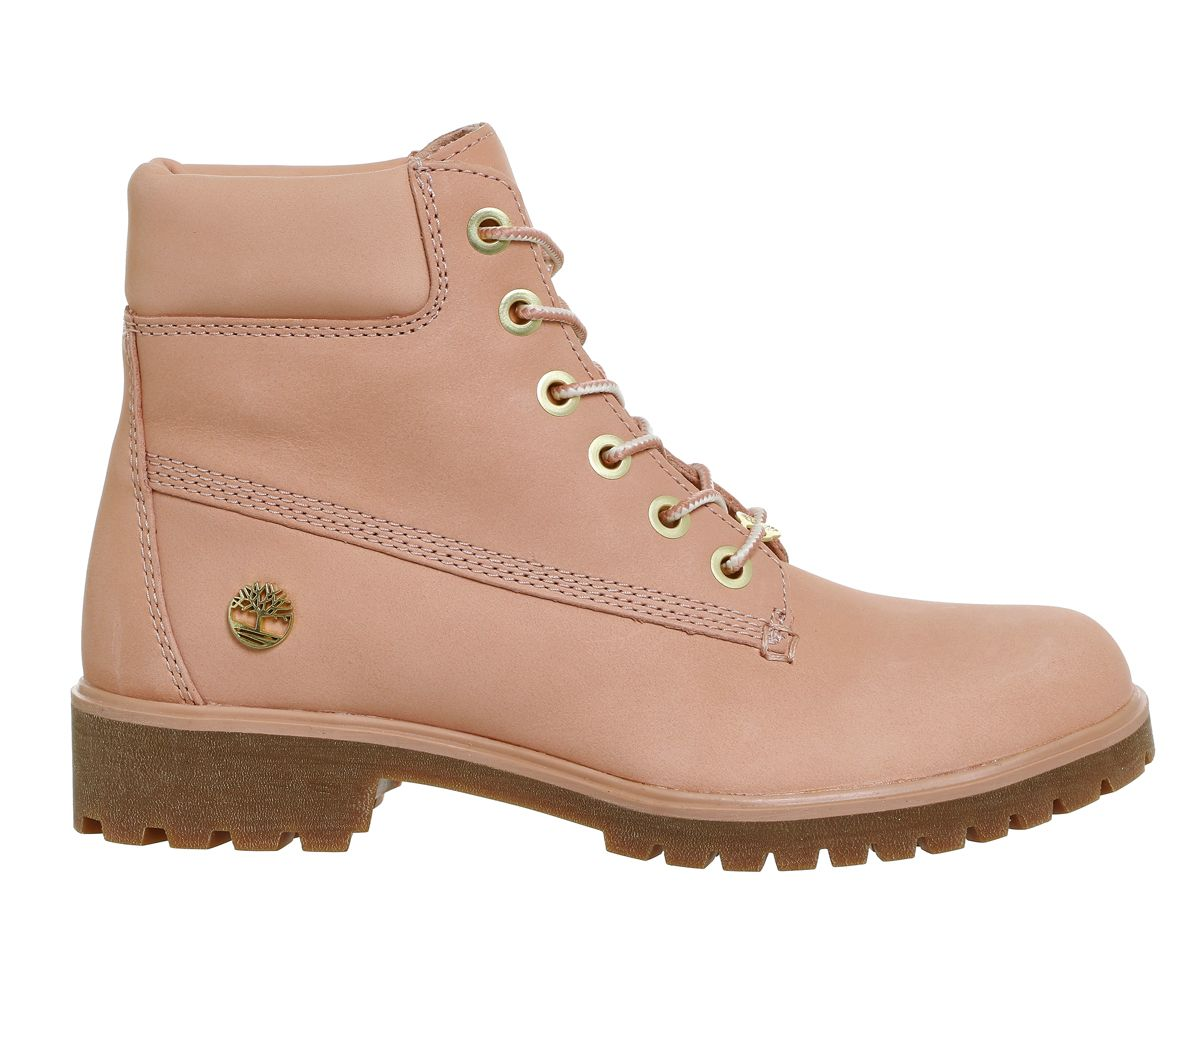 timberland shoes images with price